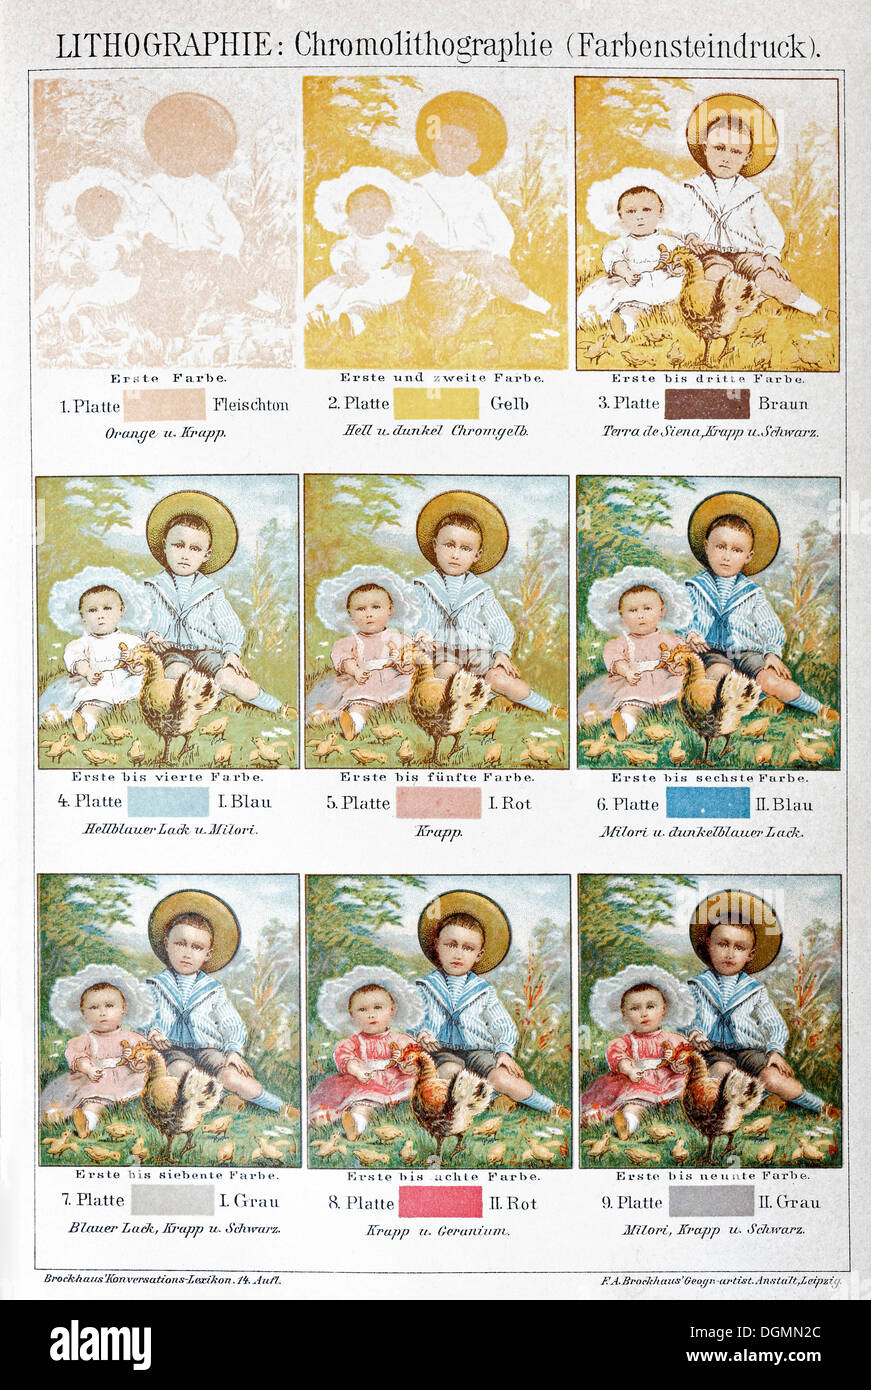 Chromolithography, 19th century, color lithography or stone printing, color plate with individual inks - Stock Image